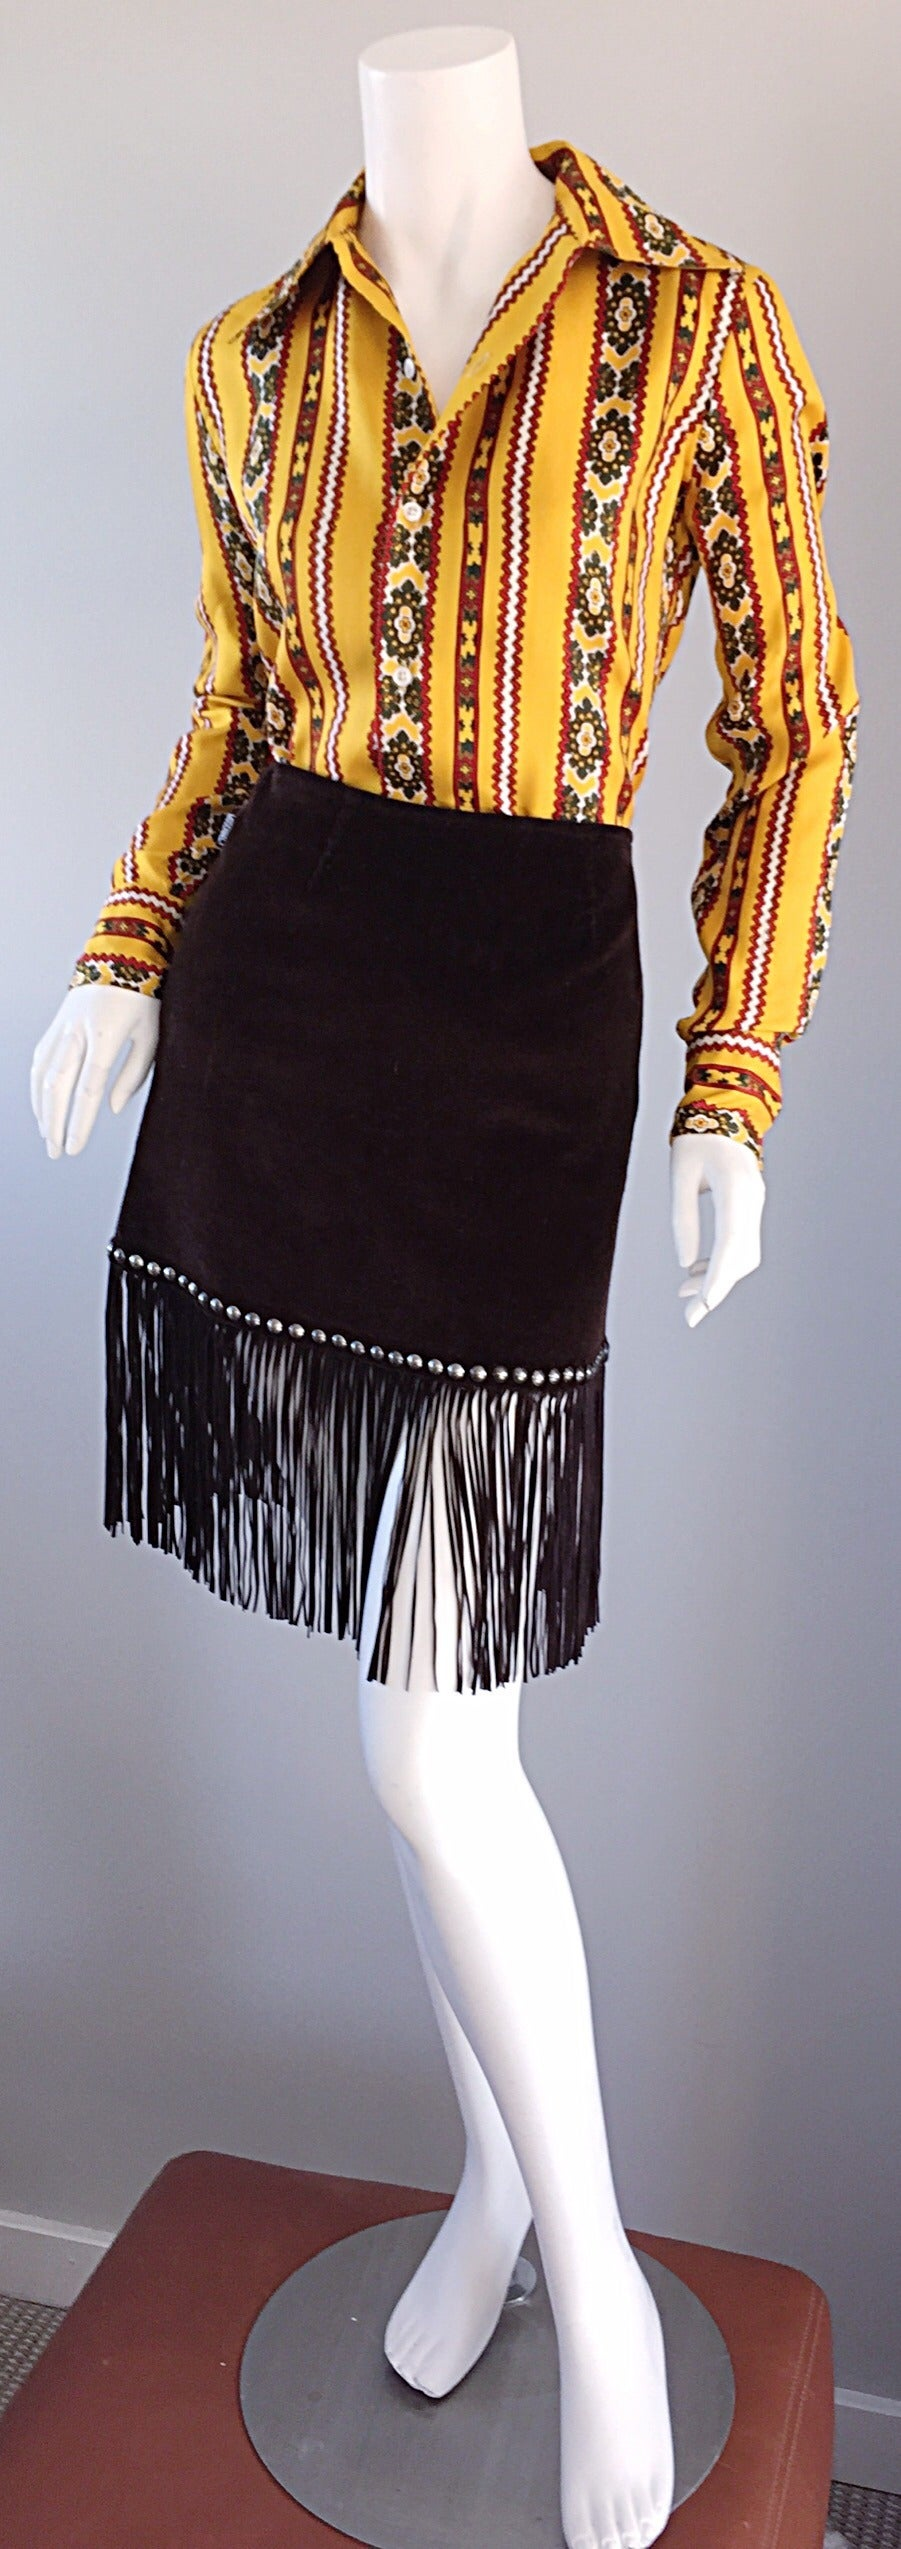 Vintage Moschino Brown Cotton Corduroy Studded 1990s 90s Fringe Mini Skirt 9